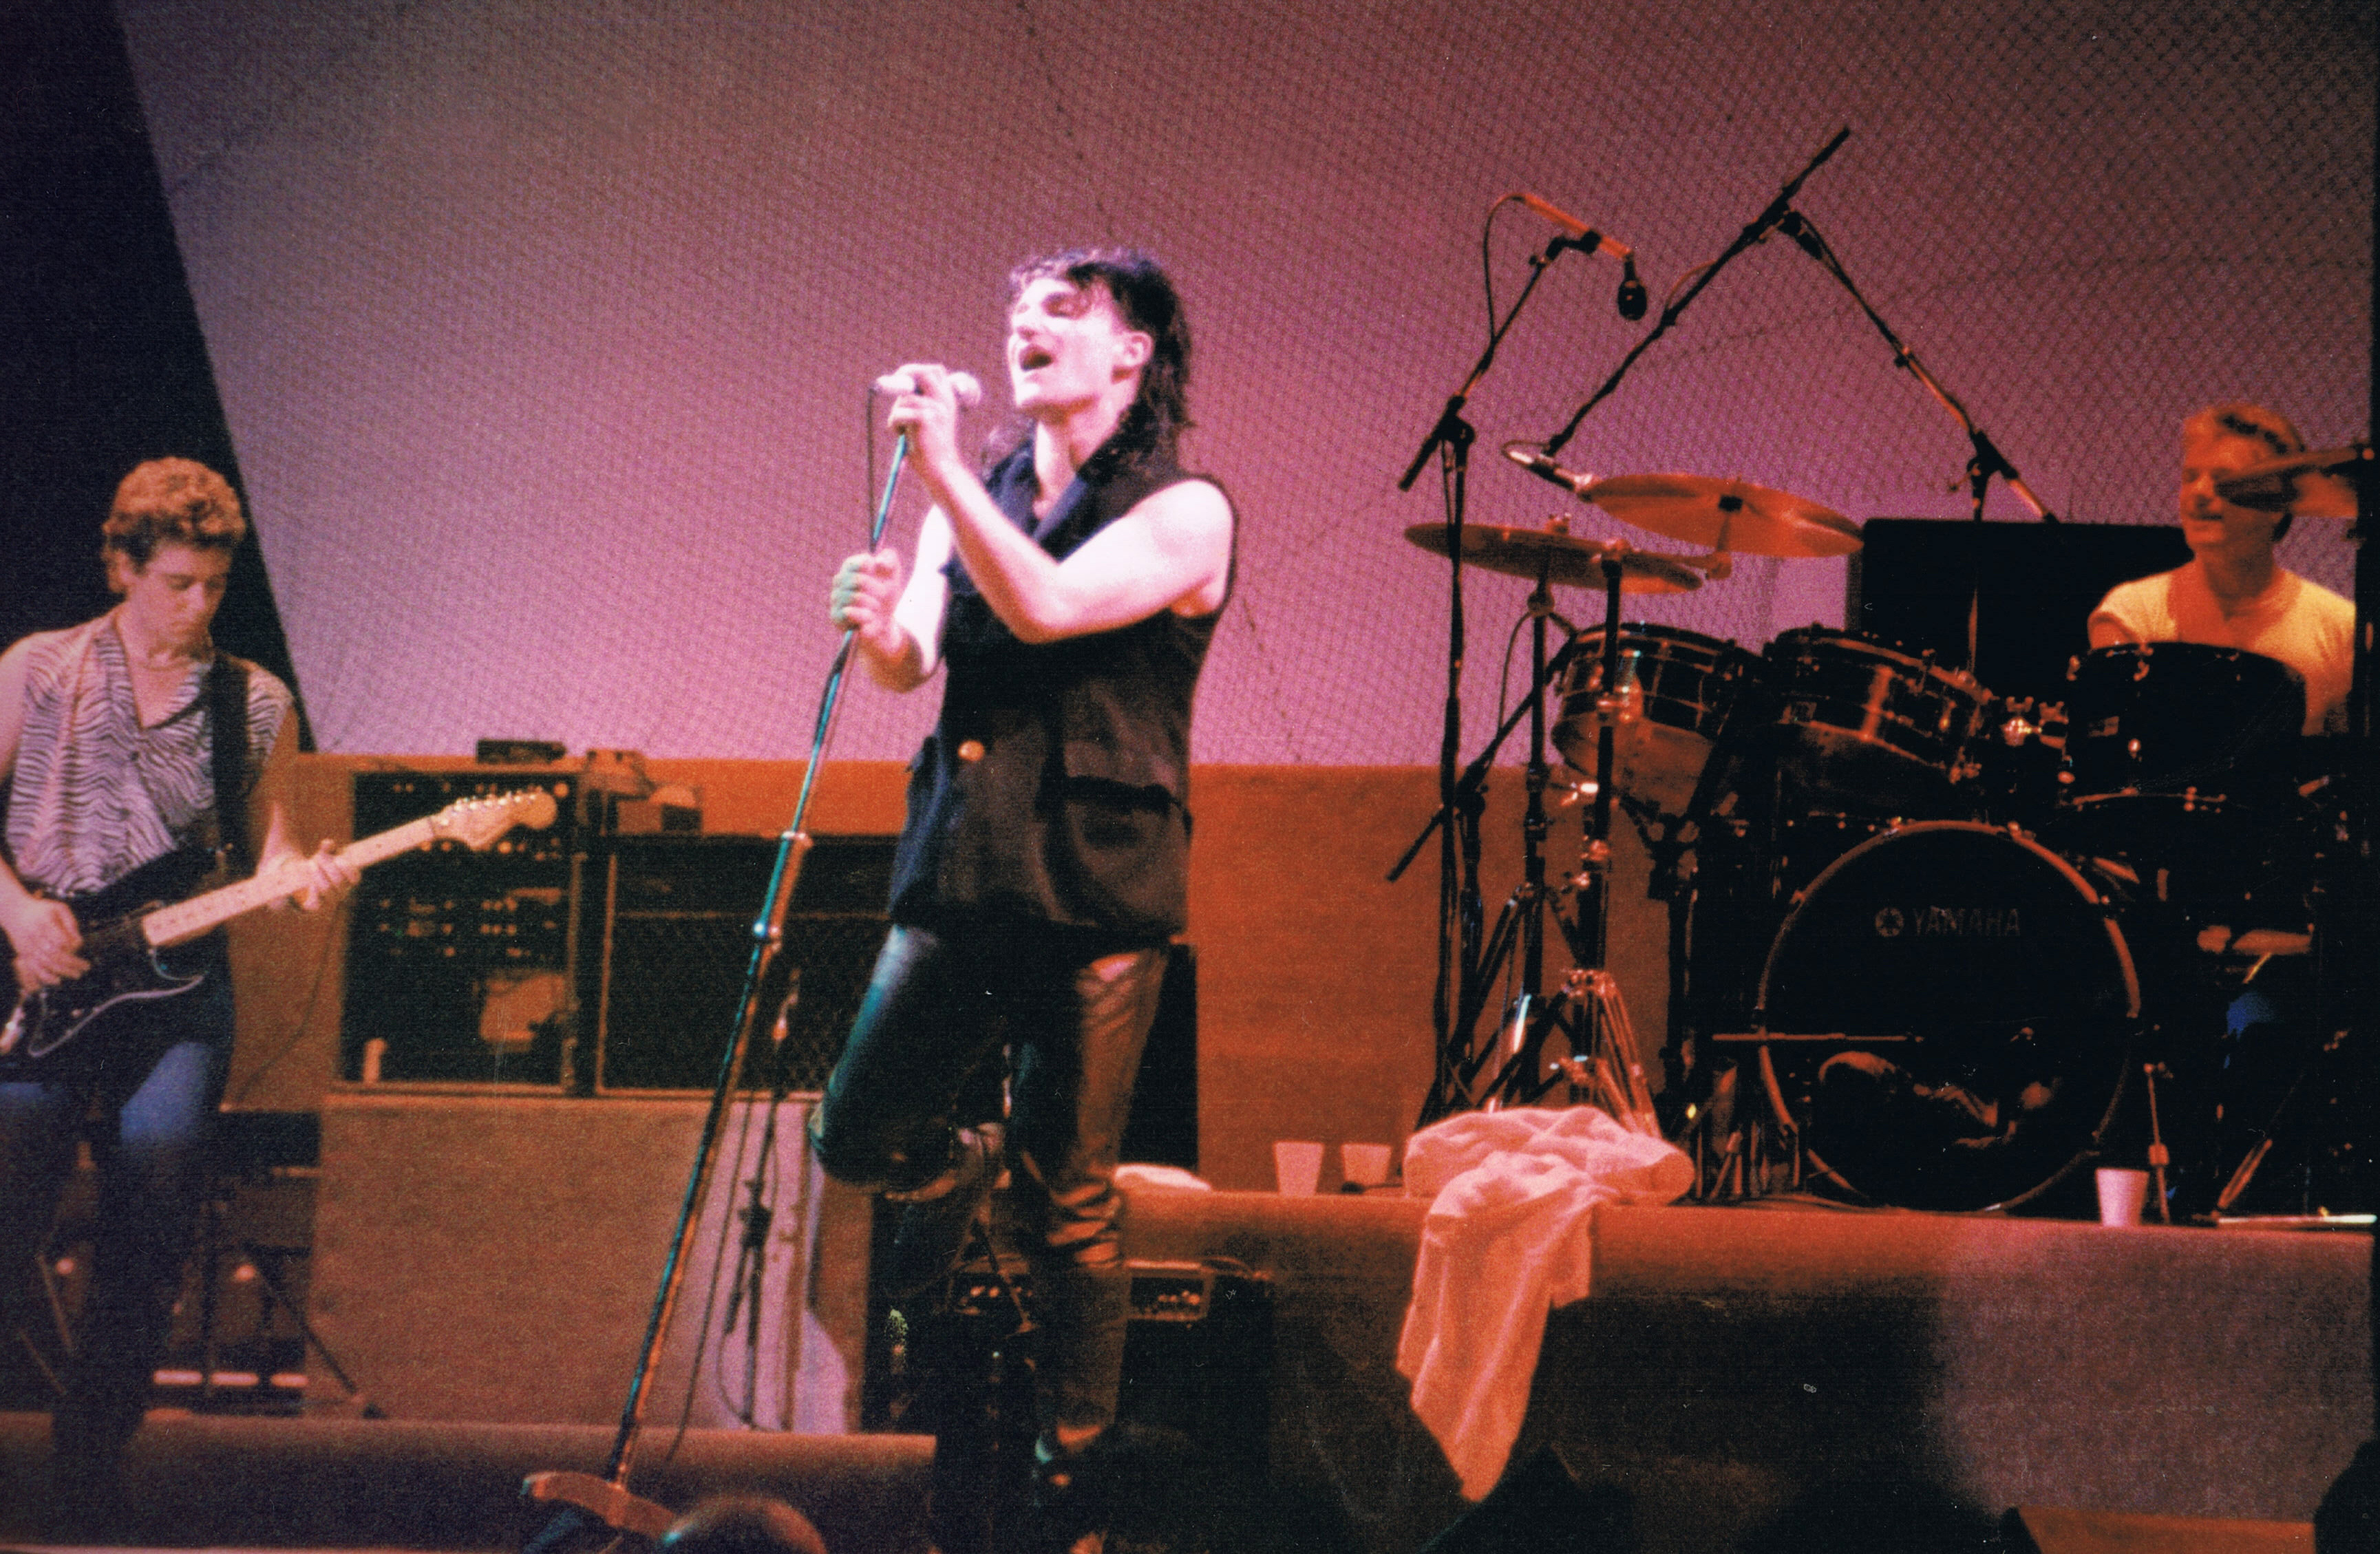 U2 performing in Sydney in September 1984 on the Unforgettable Fire Tour